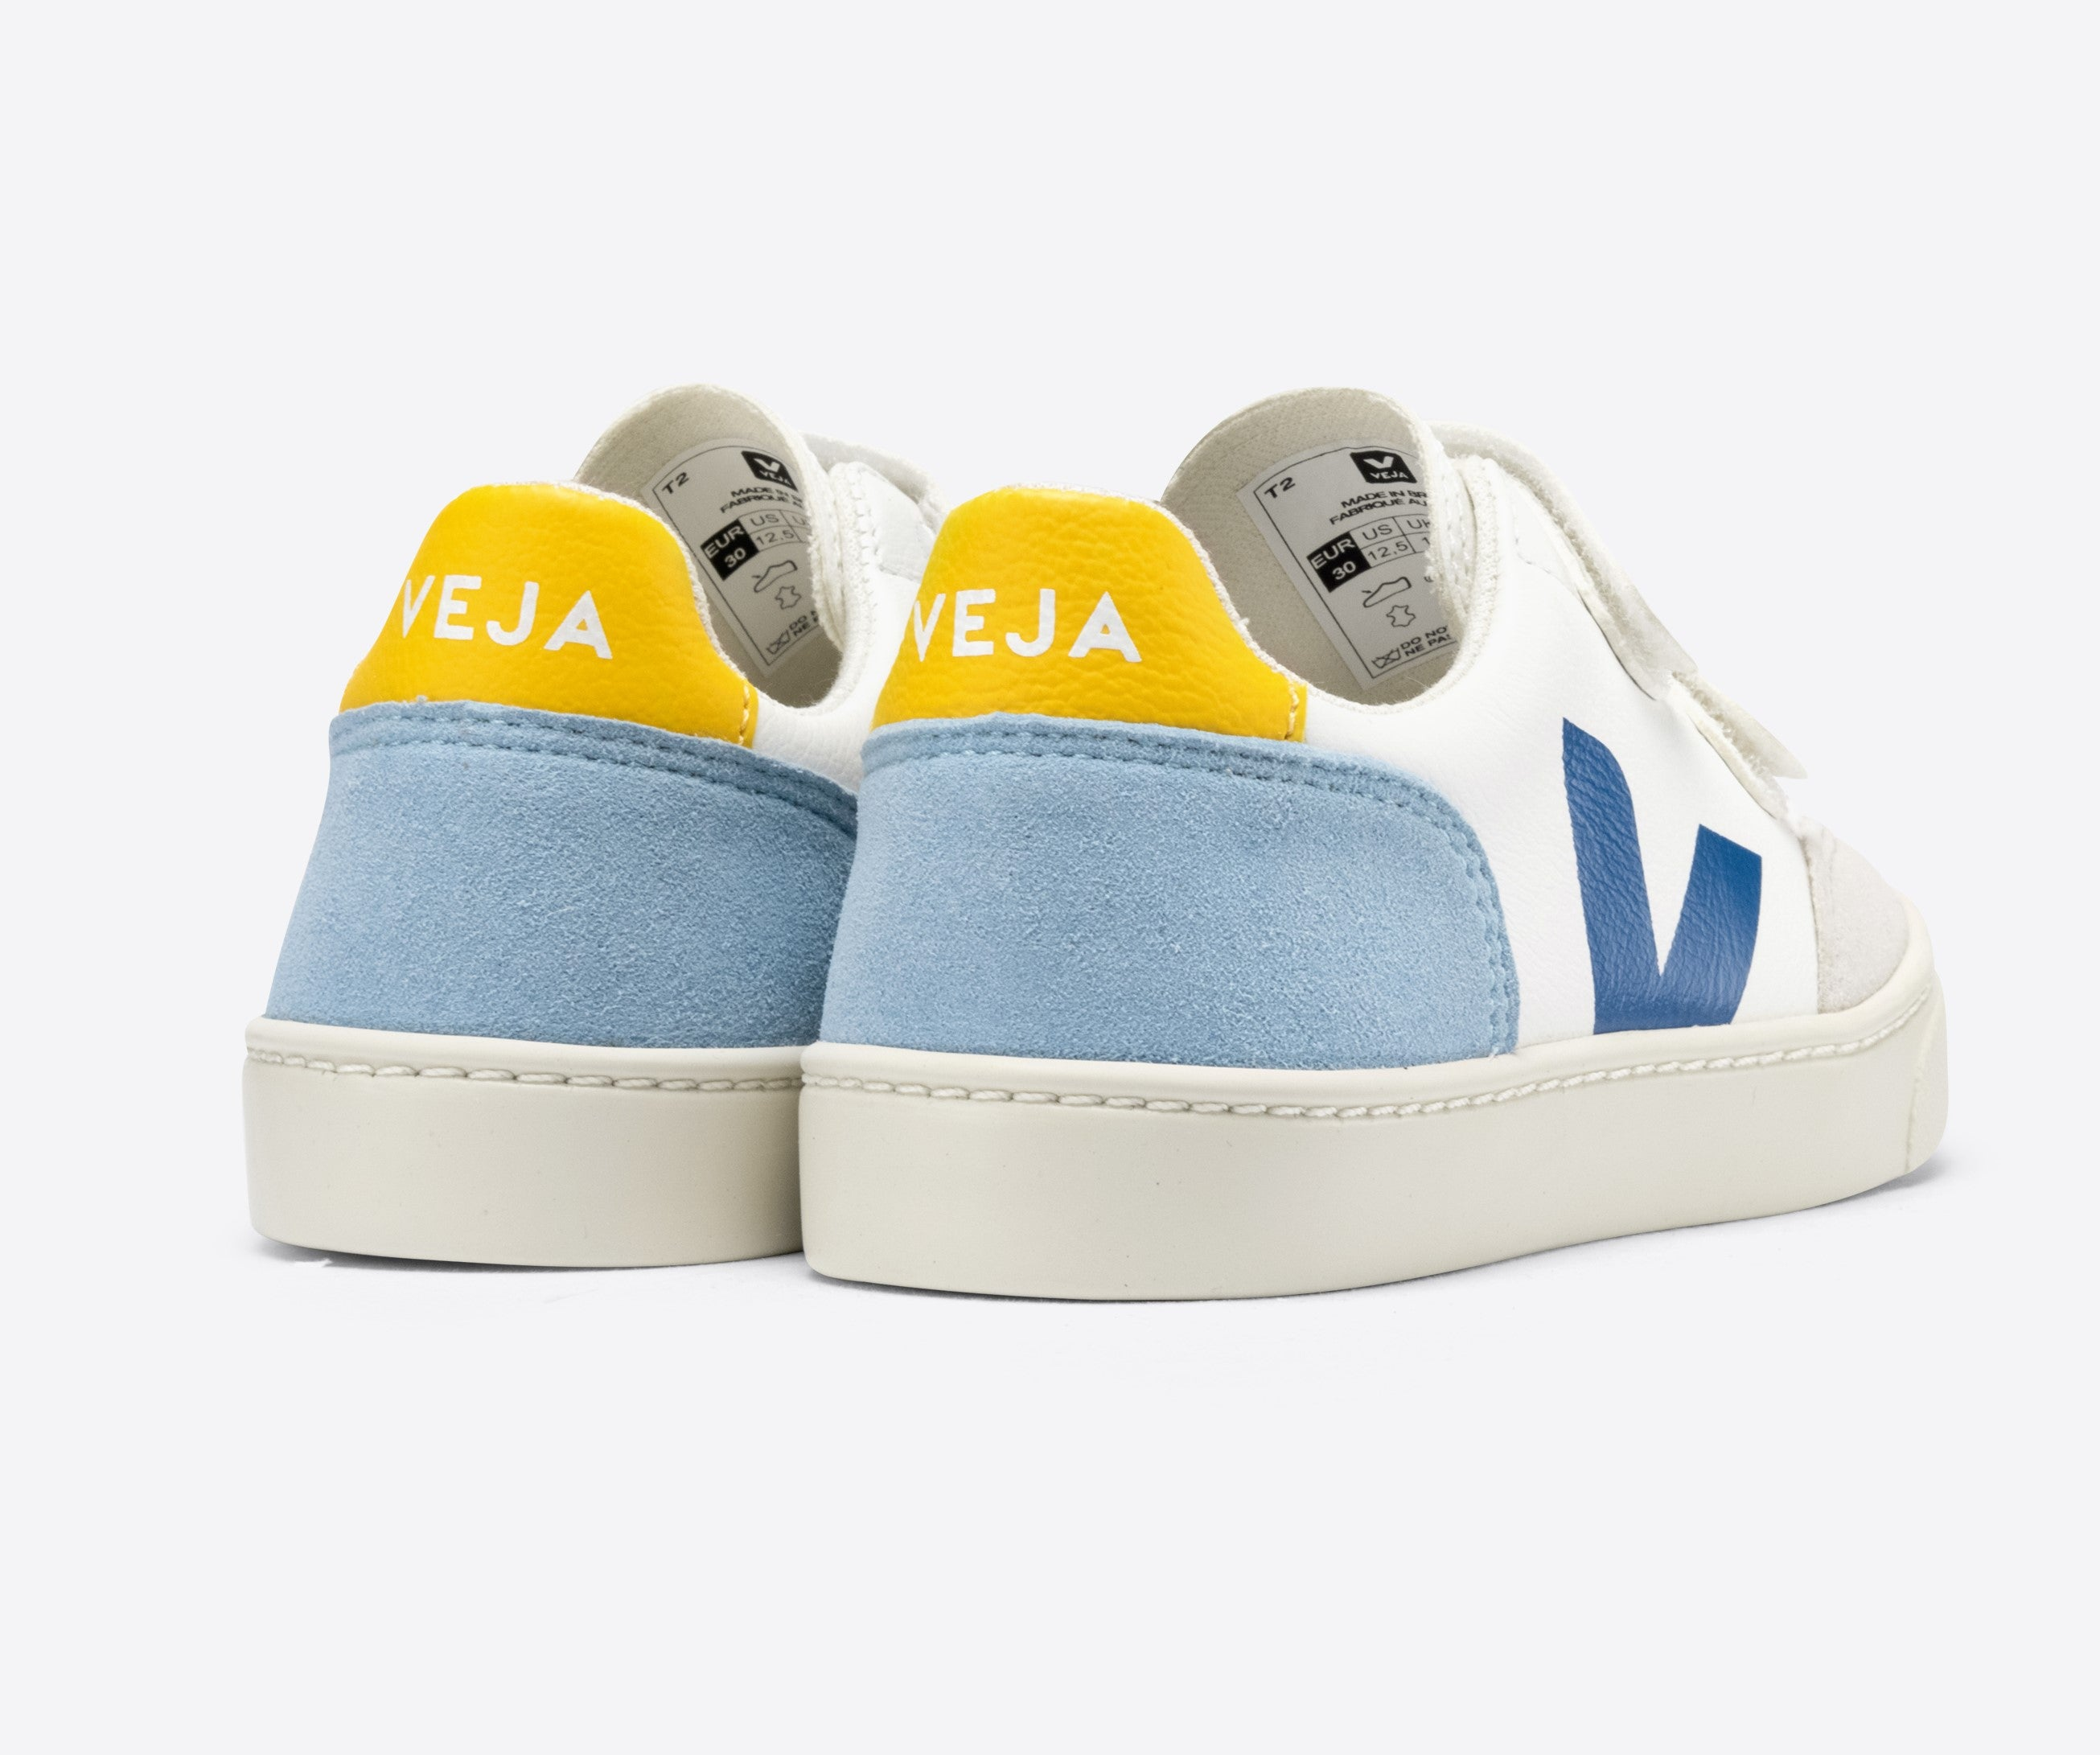 Veja White Velcro Sneaker with Blue V